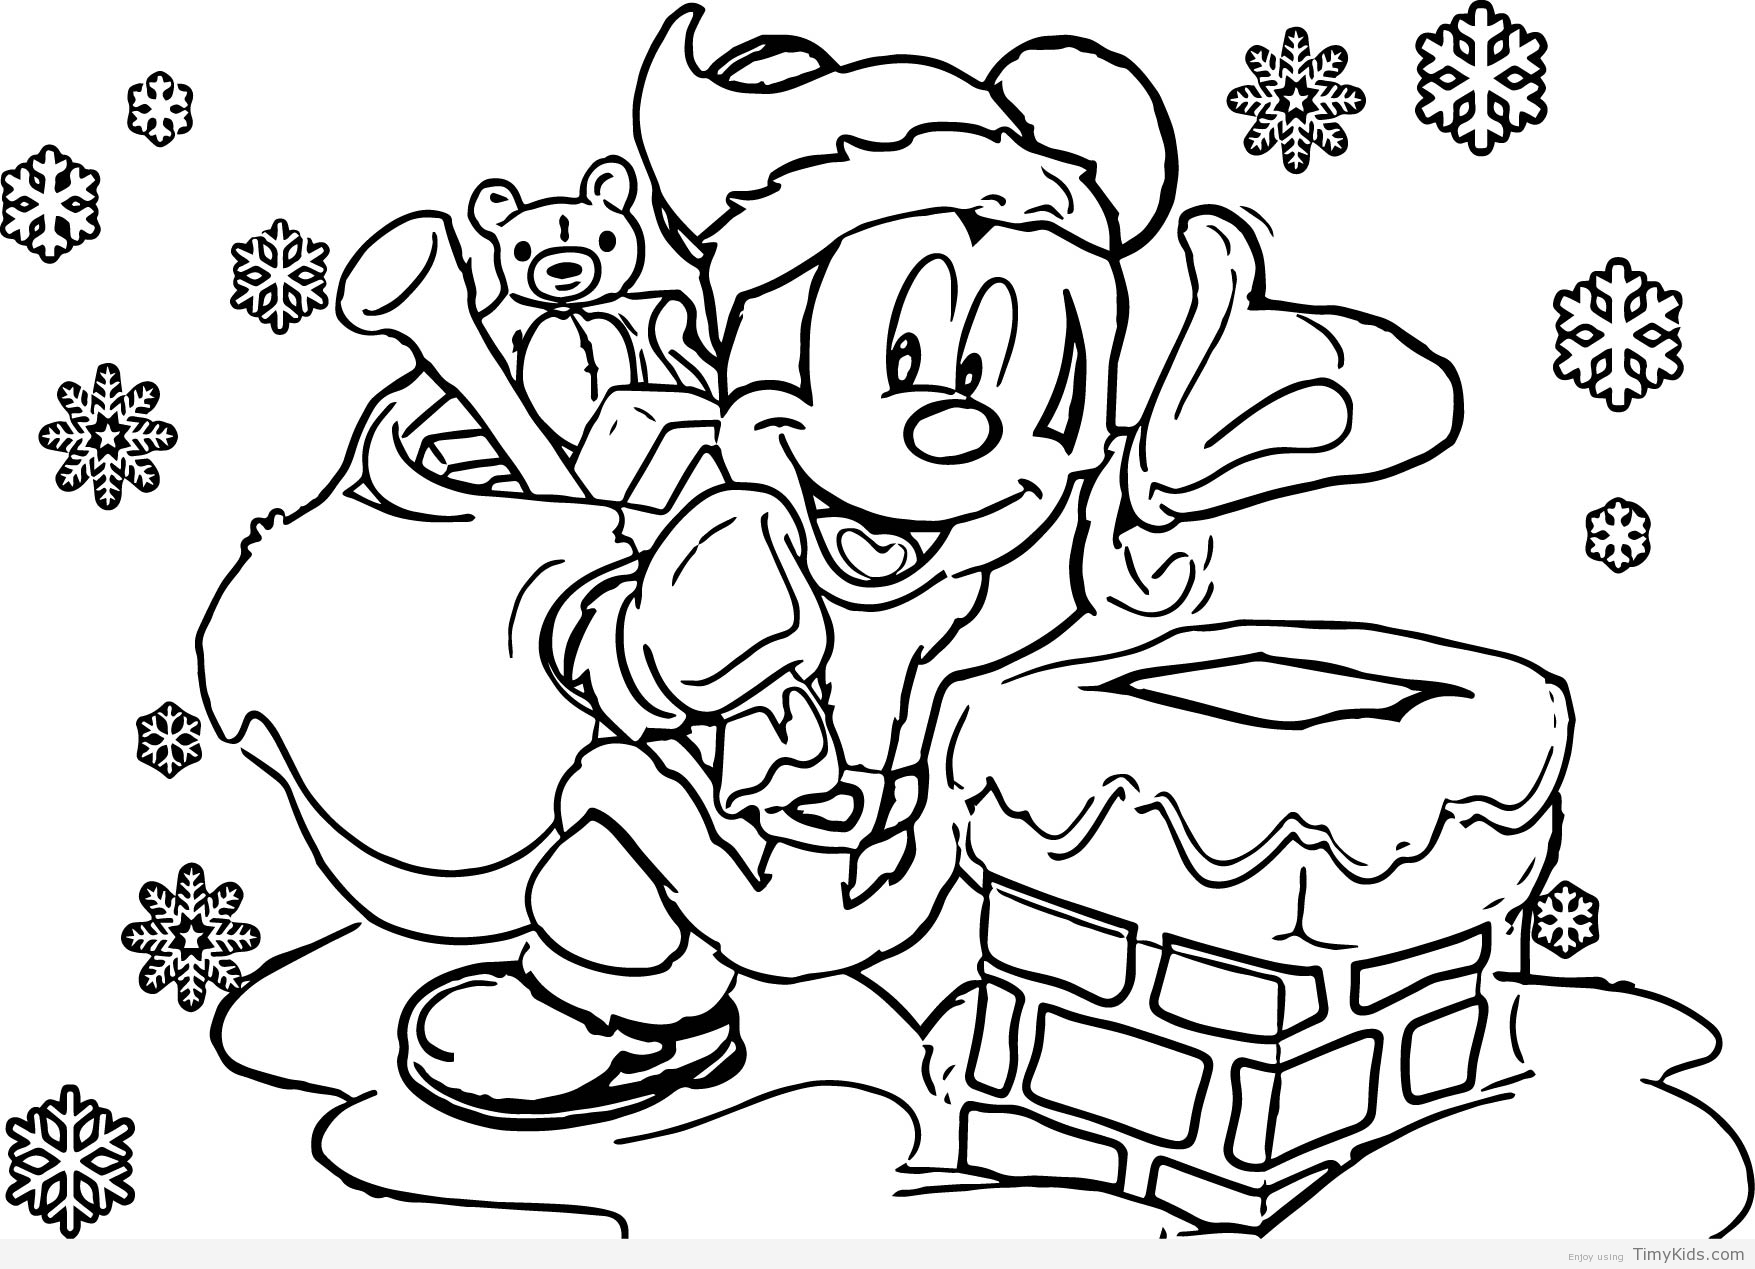 Christmas Coloring Pages Printable Disney With Minion To Print Free Books